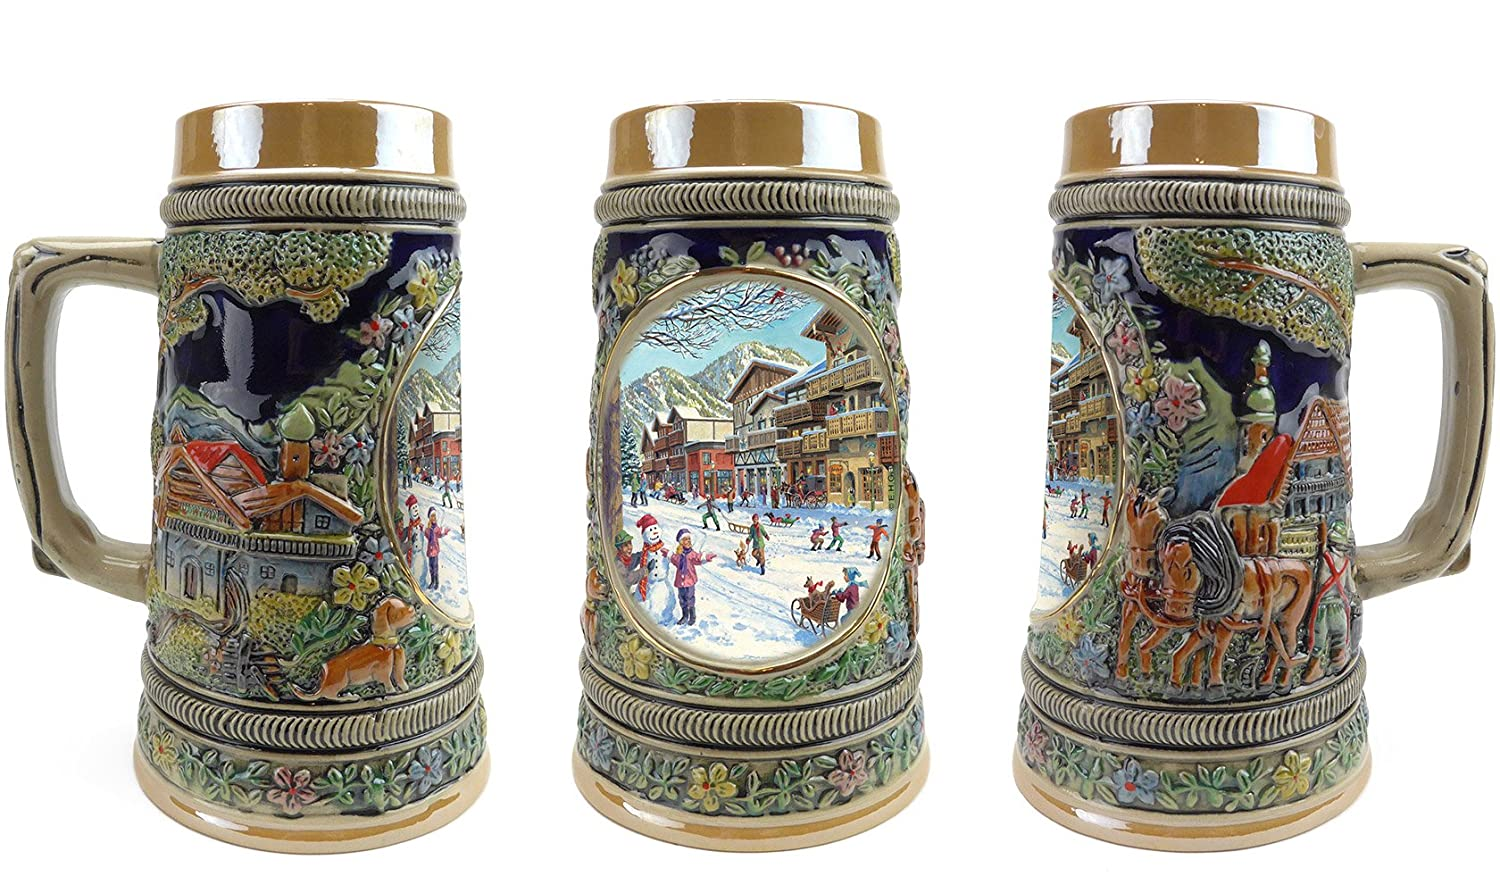 """Winter In Germany"" Essence of Europe Gifts E.H.G. Collectible Ceramic Beer Stein (#1 in Collection of Four Steins) S4636"